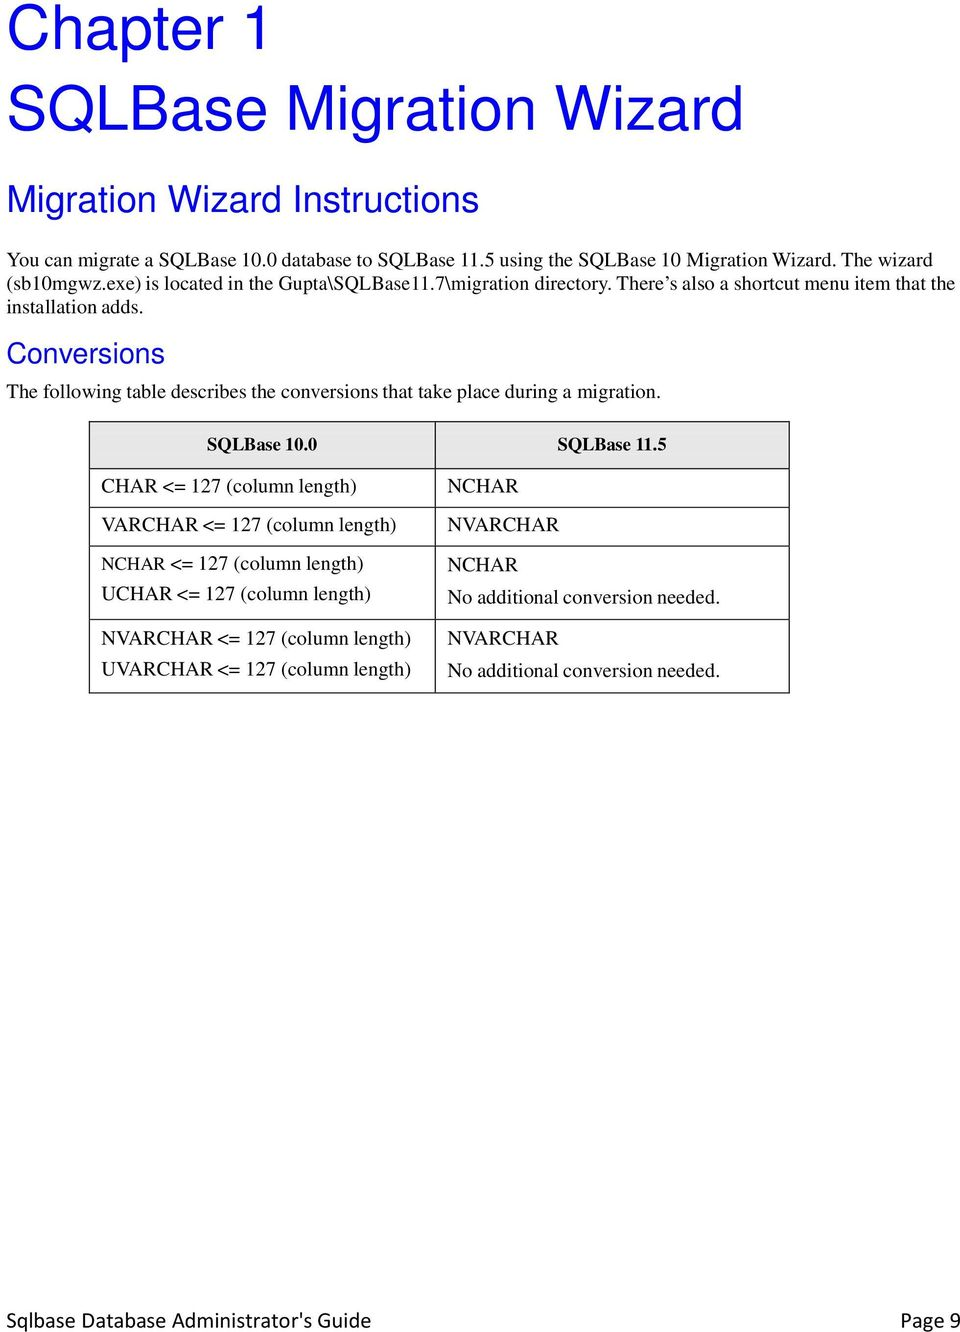 Conversions The following table describes the conversions that take place during a migration. SQLBase 10.0 SQLBase 11.